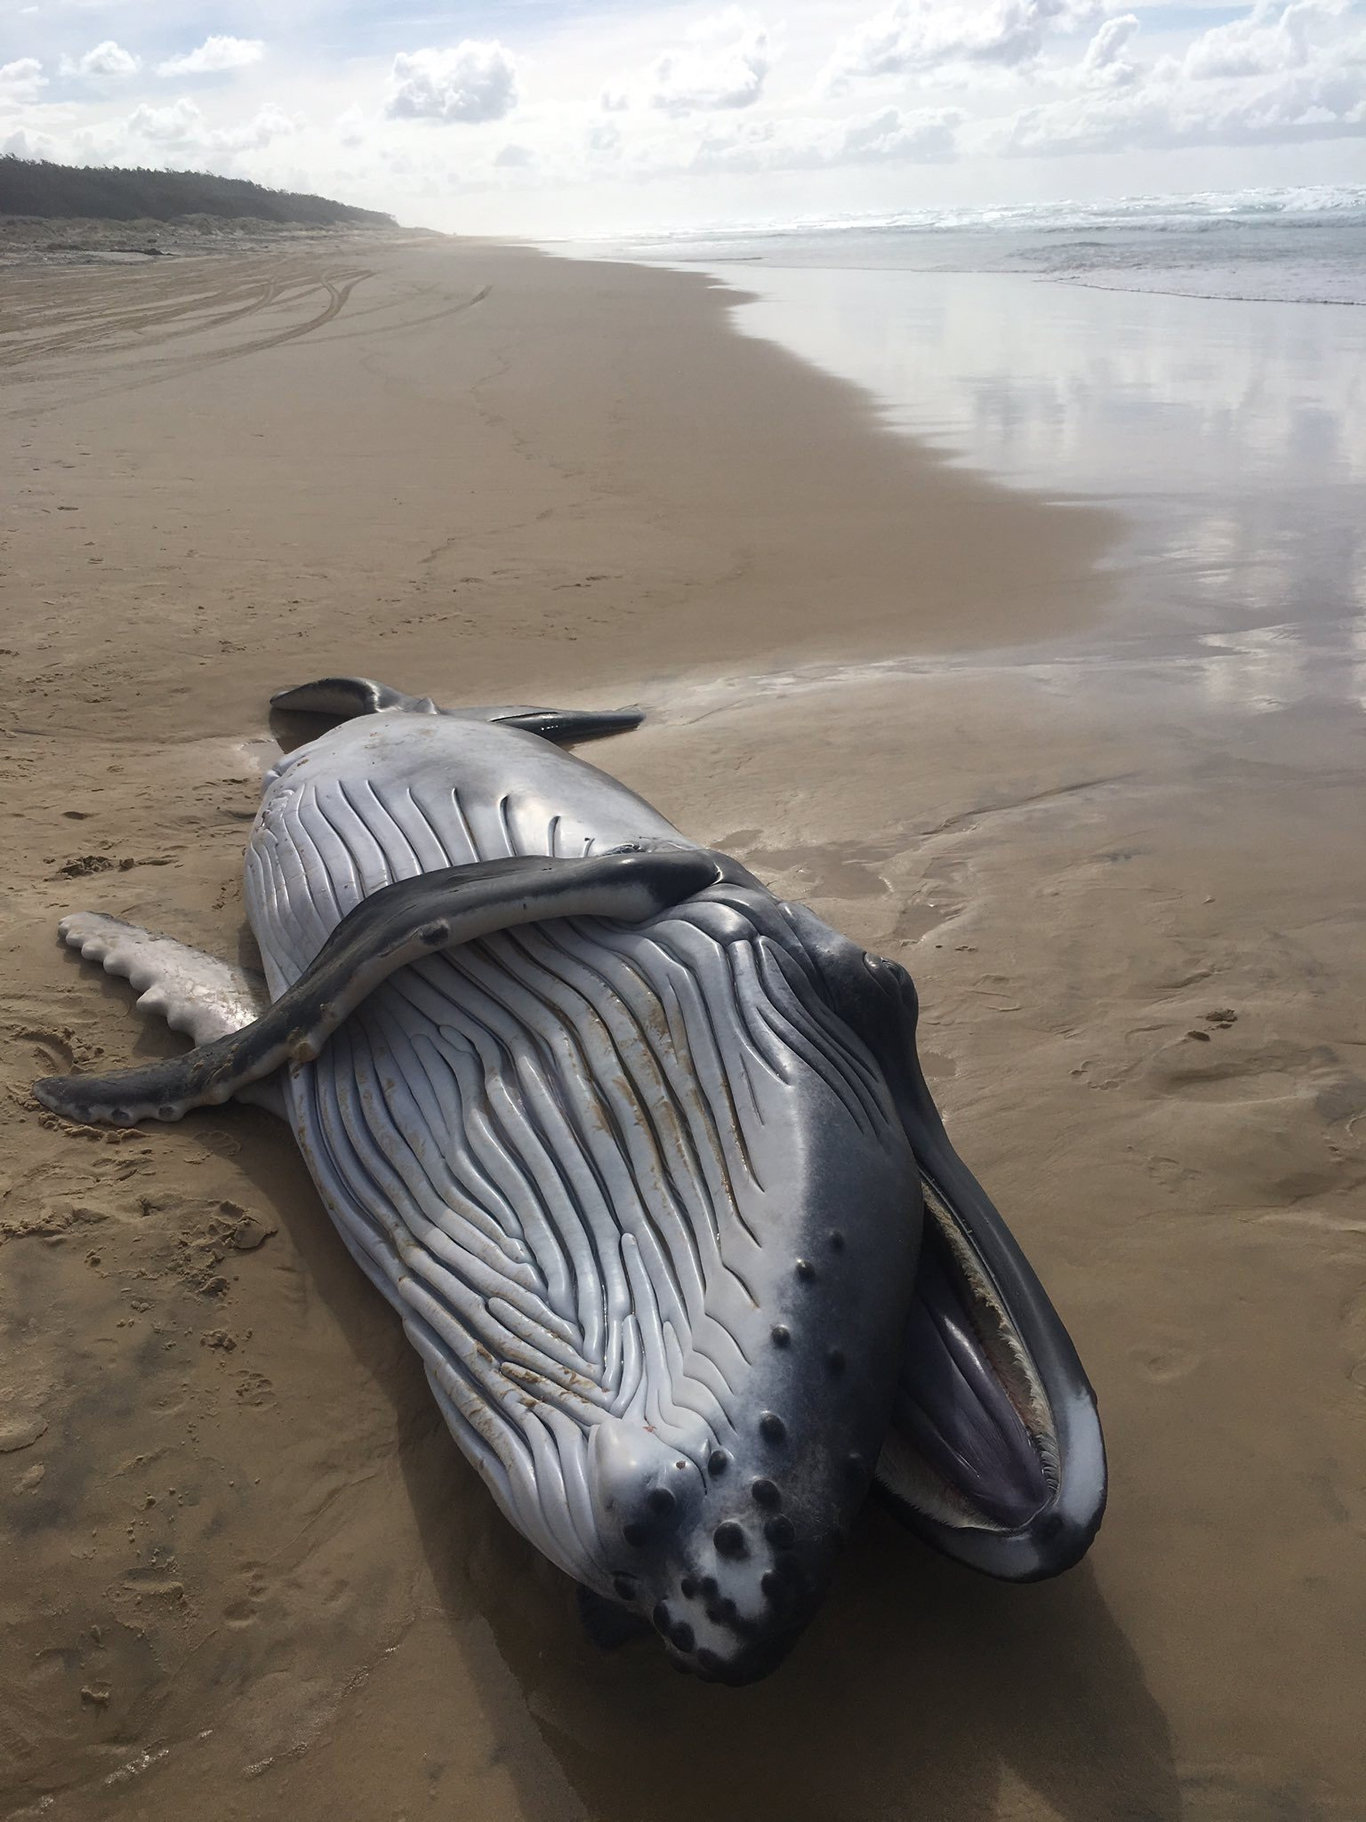 A dead baby humpback whale was found washed up on a Fraser Island beach south of Indian Heads on Tuesday.